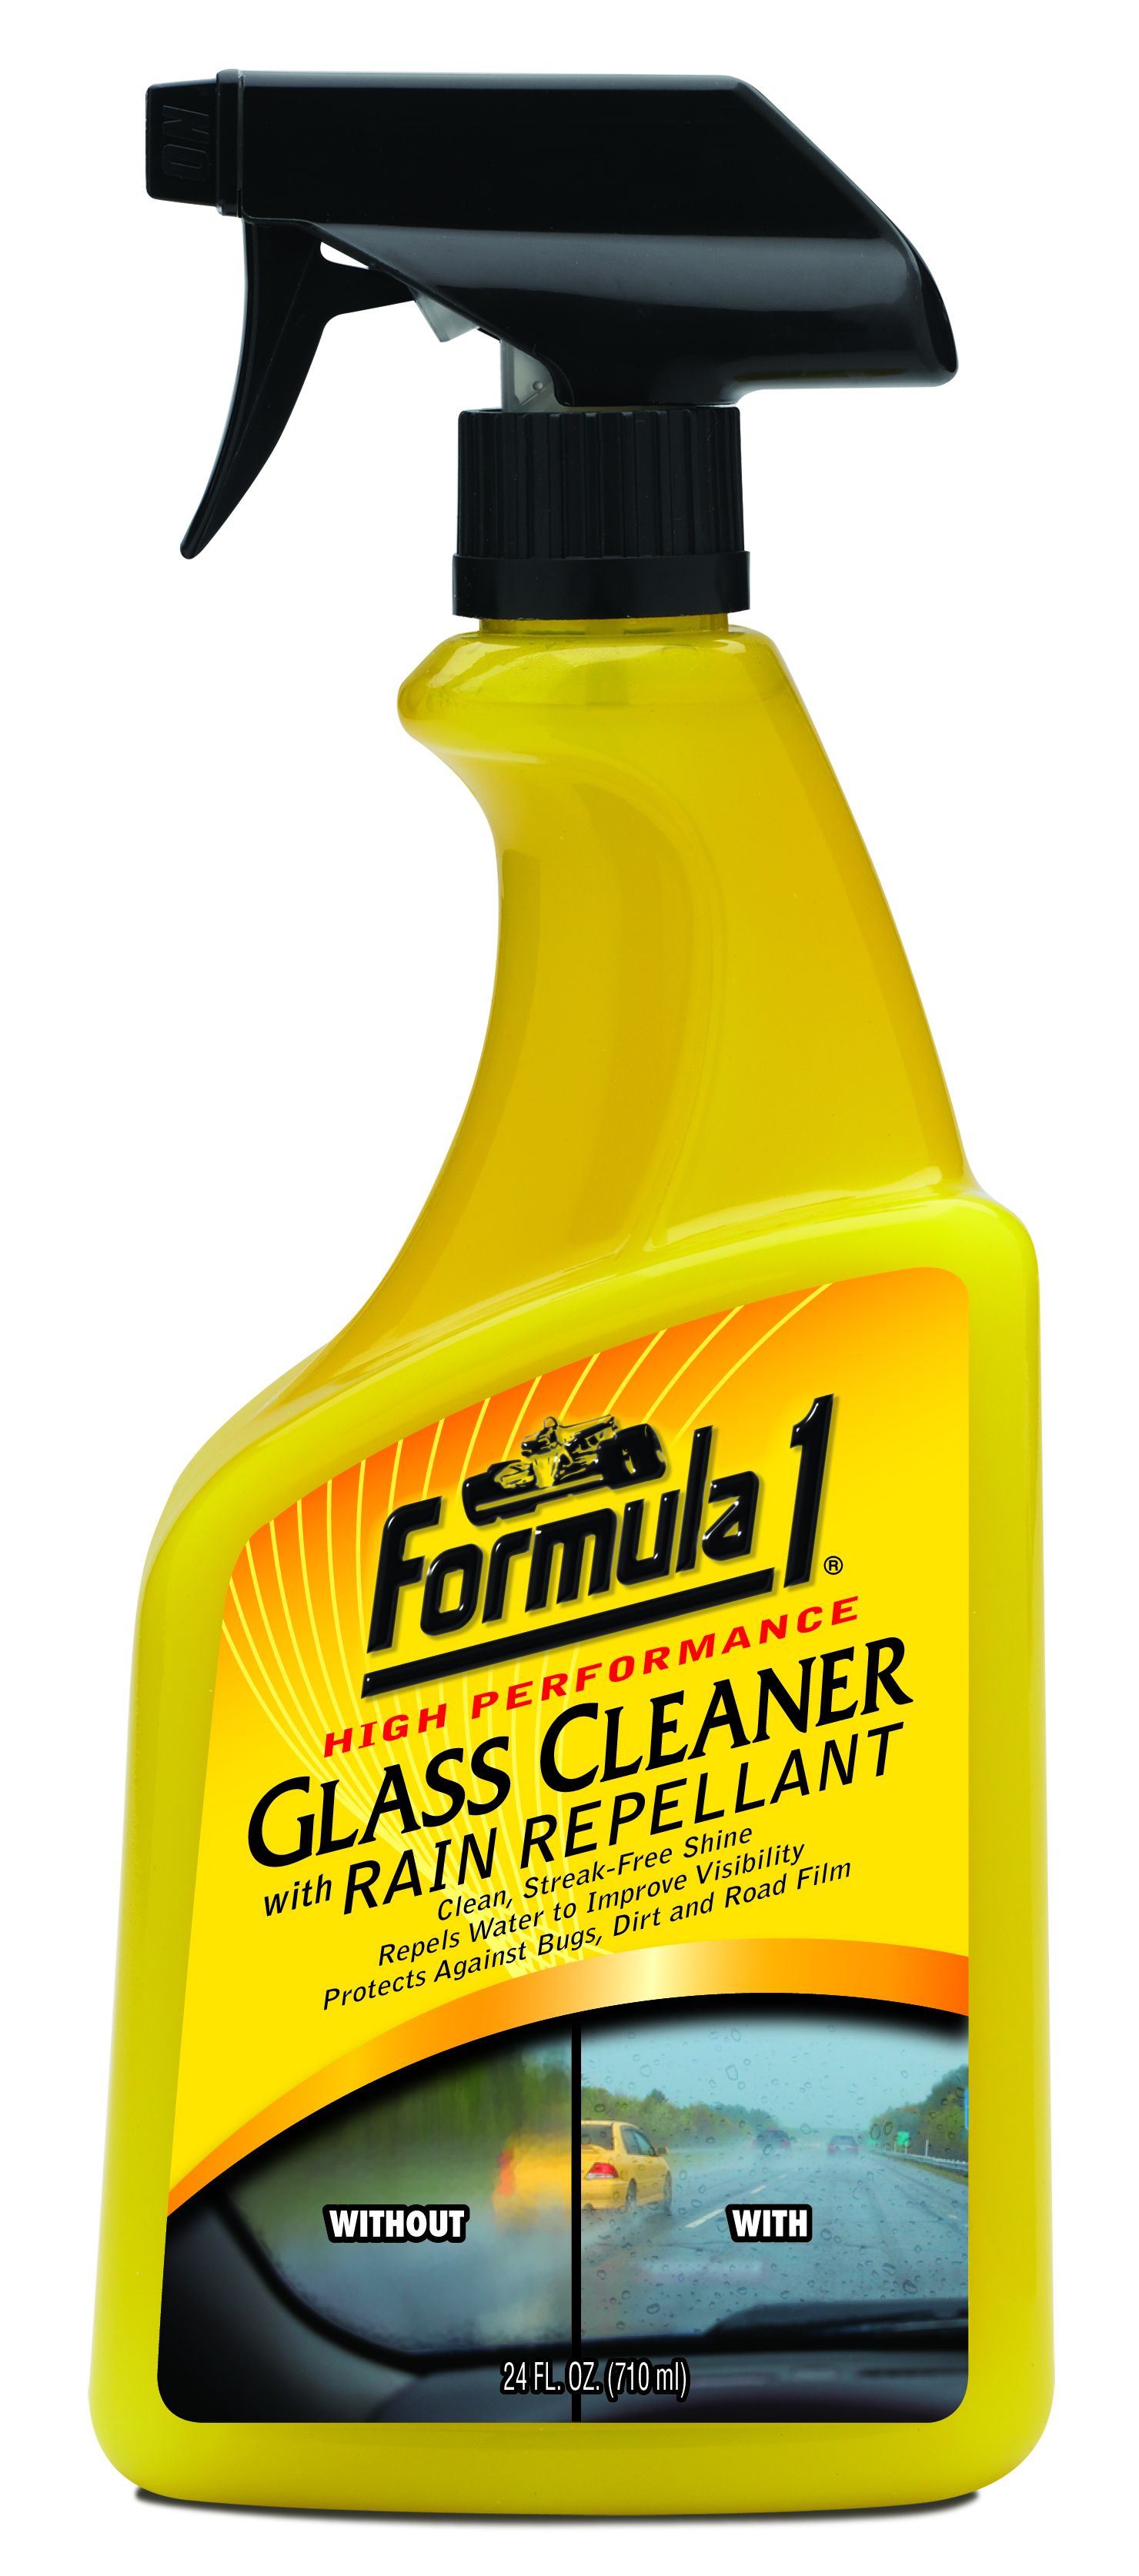 Glass Cleaner with Repellant Image